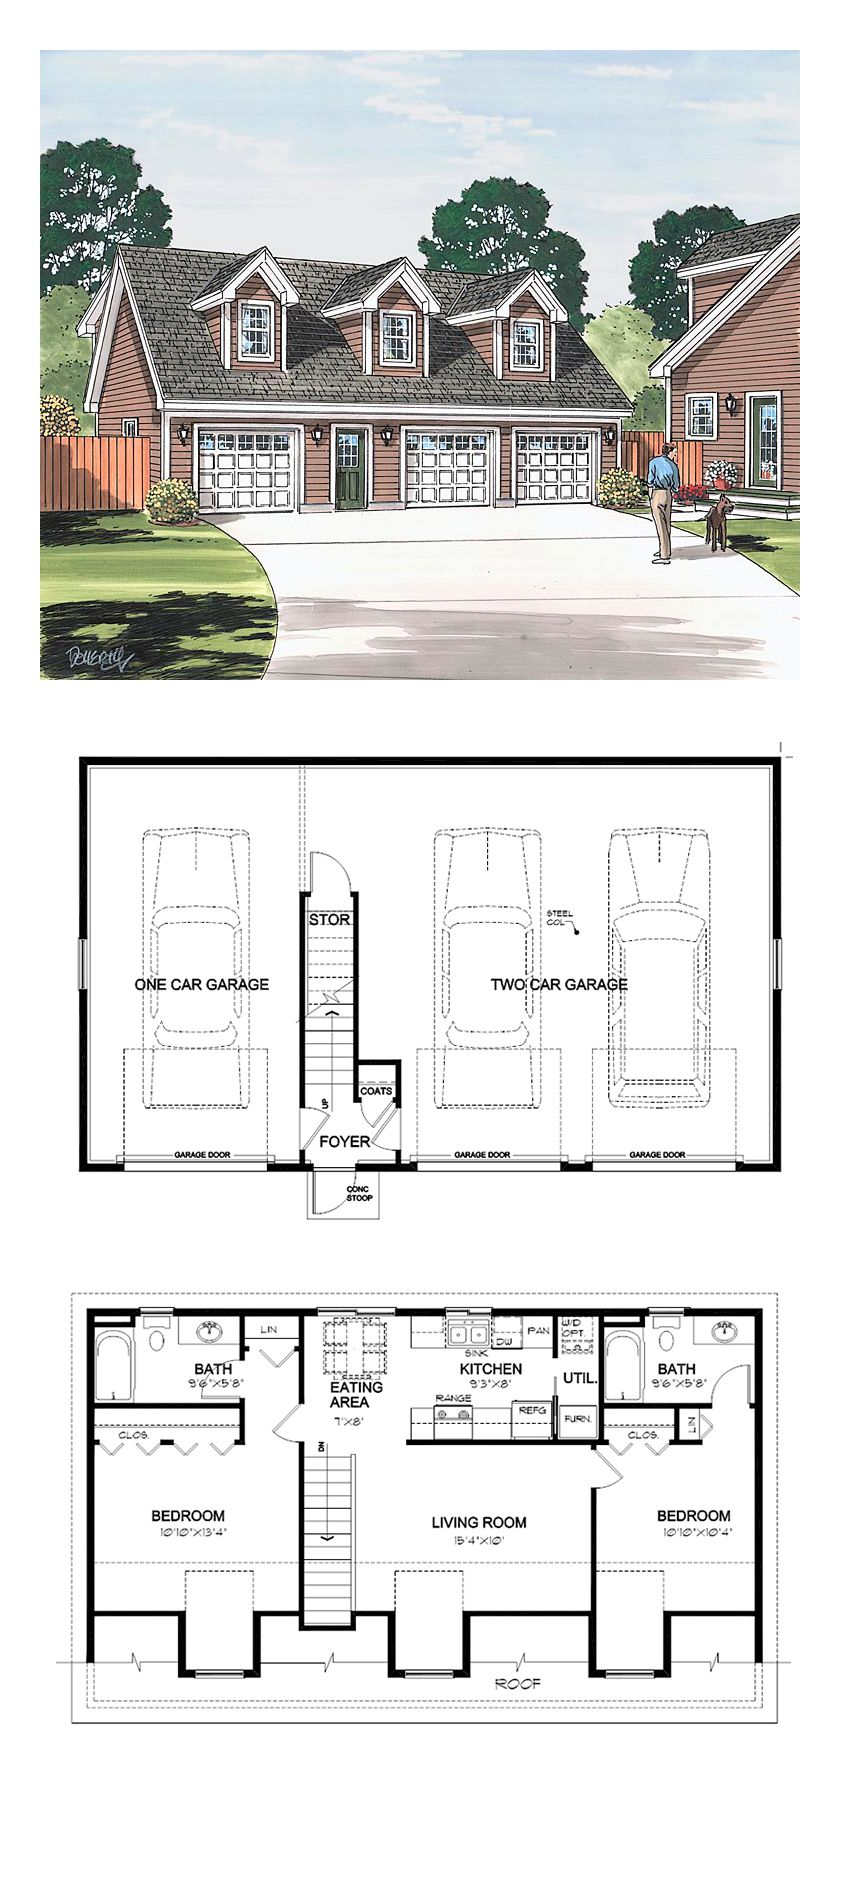 Garage apartment plan 30032 total living area 887 sq for Garage apartment floor plans